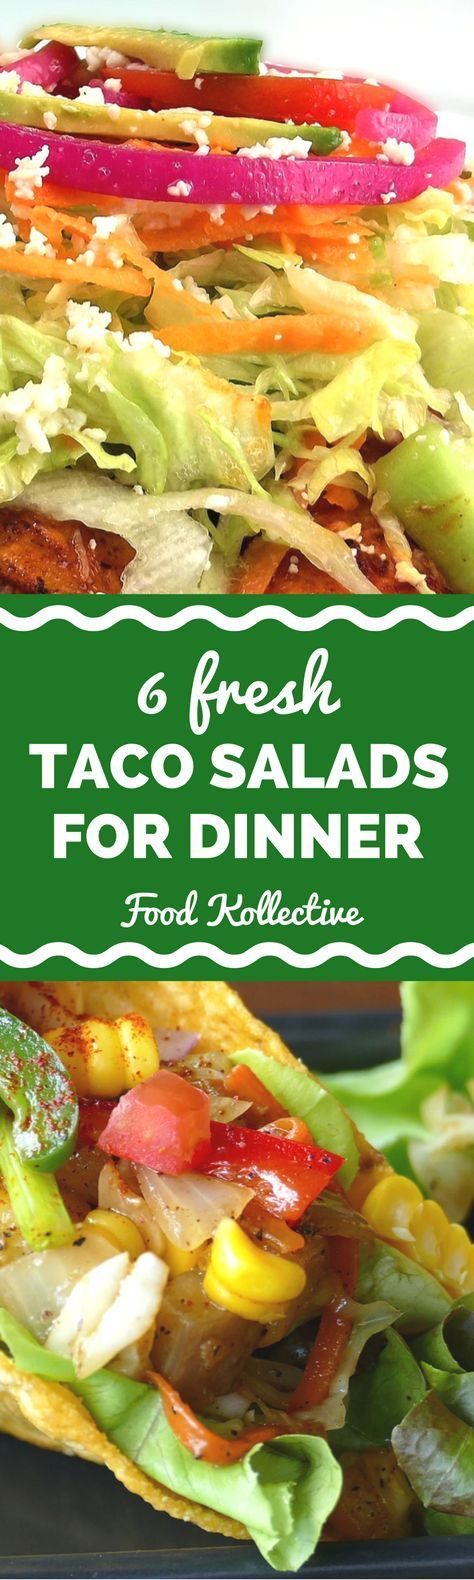 I was looking for taco salad recipes and these look delicious! There are recipes for beef taco salad, chicken taco salad, mexican chopped salad, and vegetarian taco salad. These are some great healthy mexican recipes for a weeknight dinner, Margarita Monday, Taco Tuesday, or Cinco de Mayo. Collected on http://FoodKollective.com